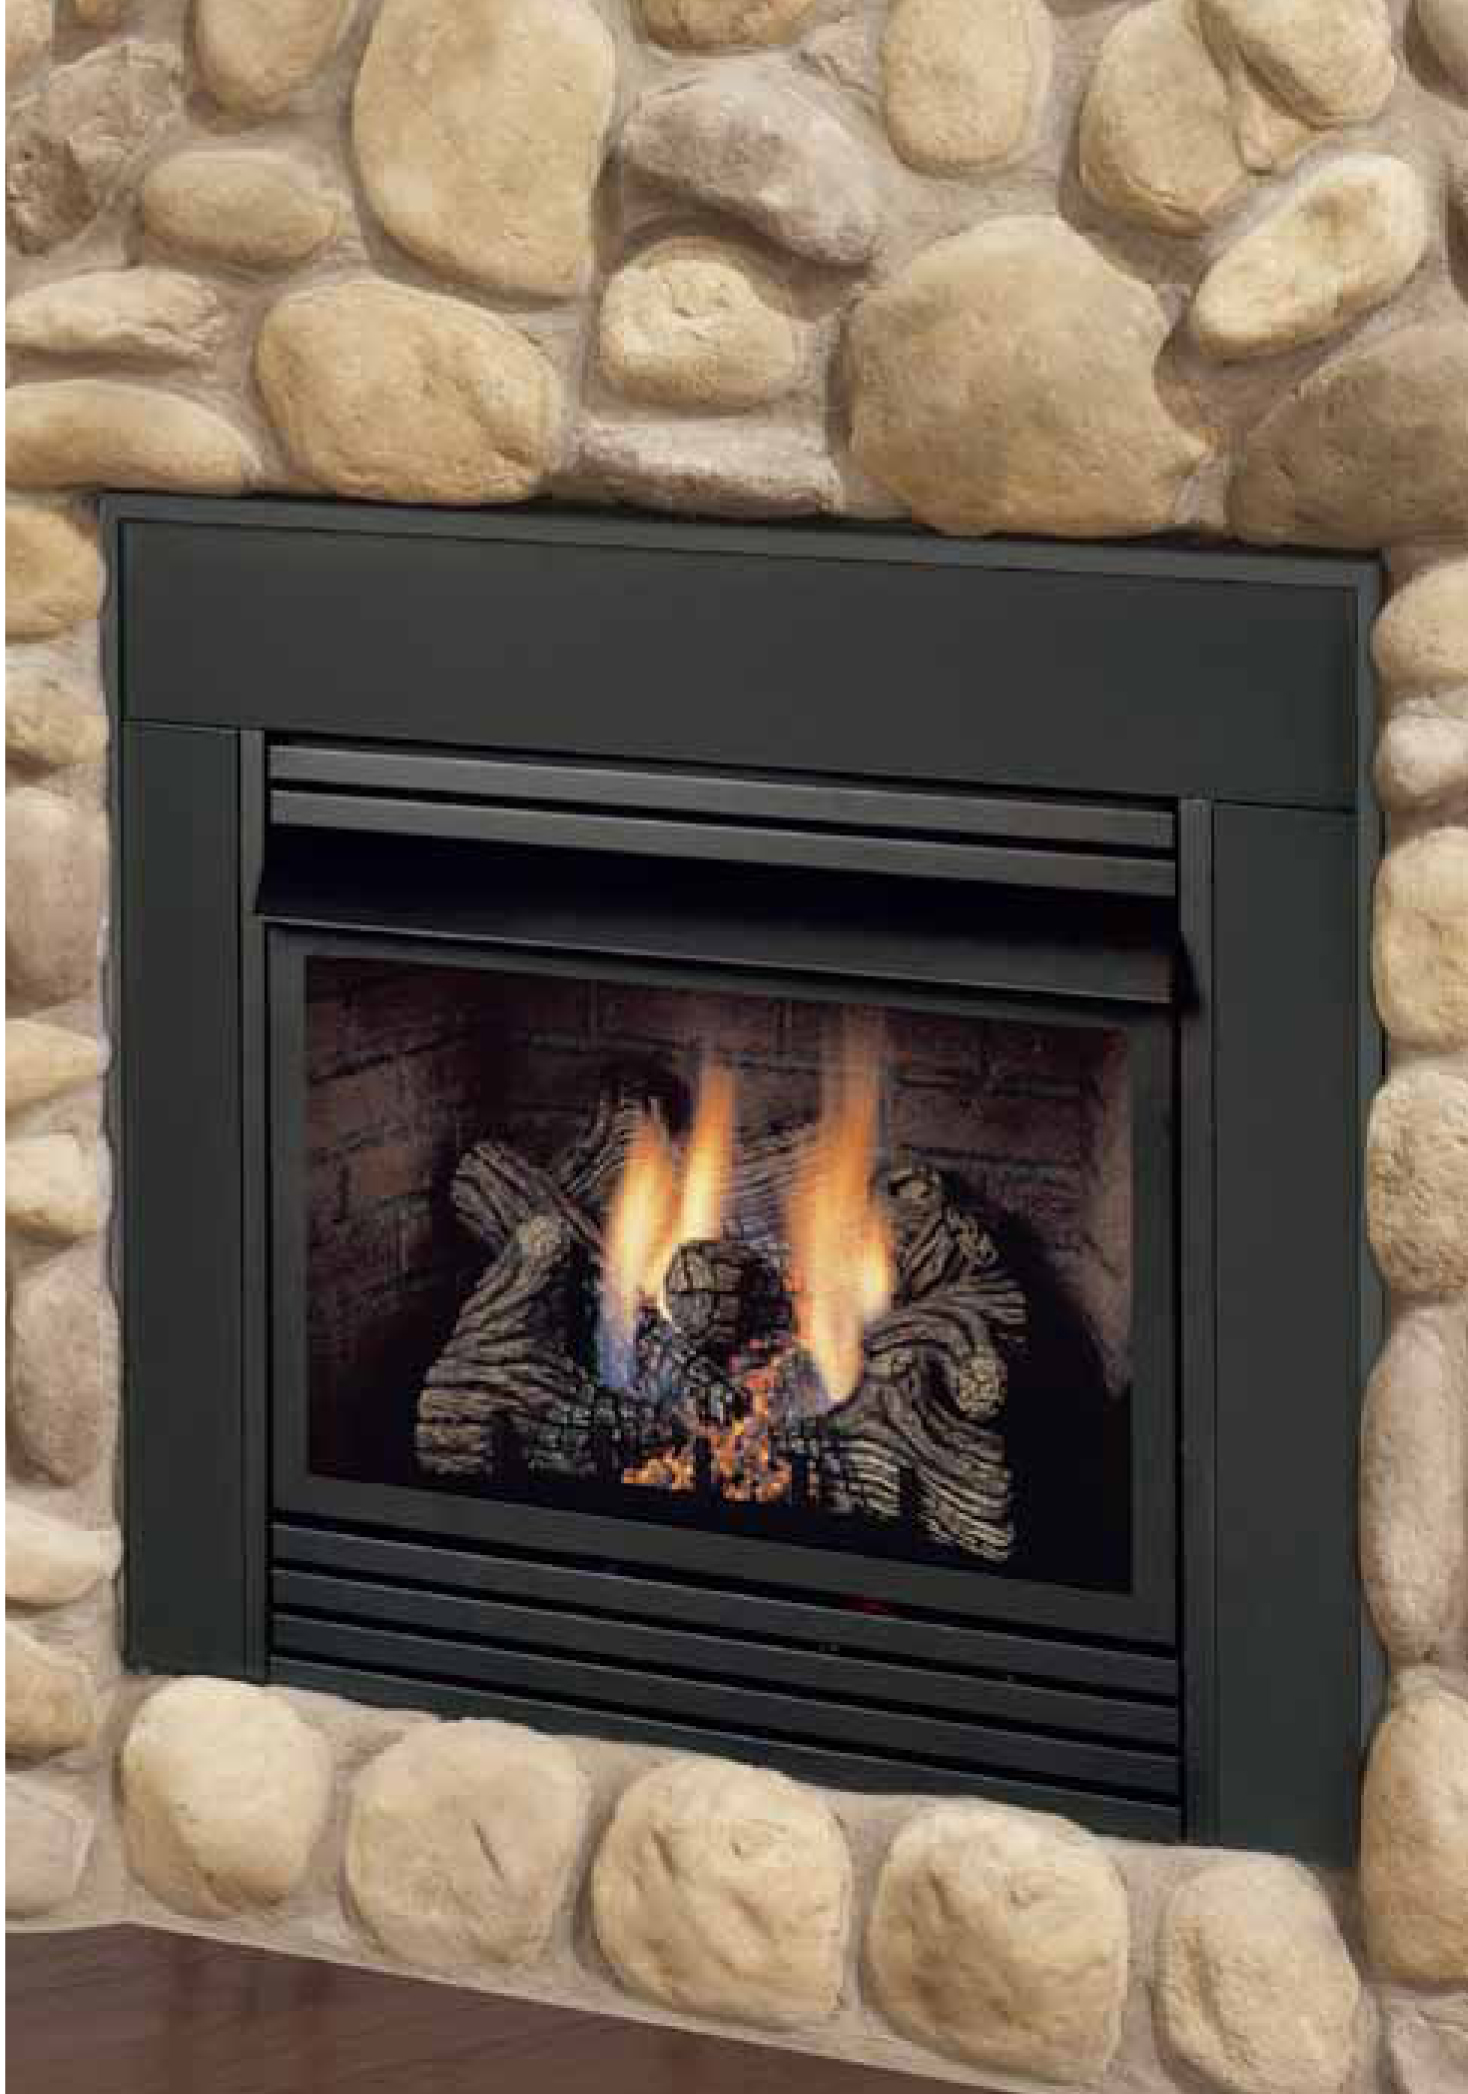 Direct Vent Fireplace Inserts, image/jpeg. Ventless Fireplace Inserts - Recreational Warehouse - Aboveground Swimming Pools, Ventless Logs